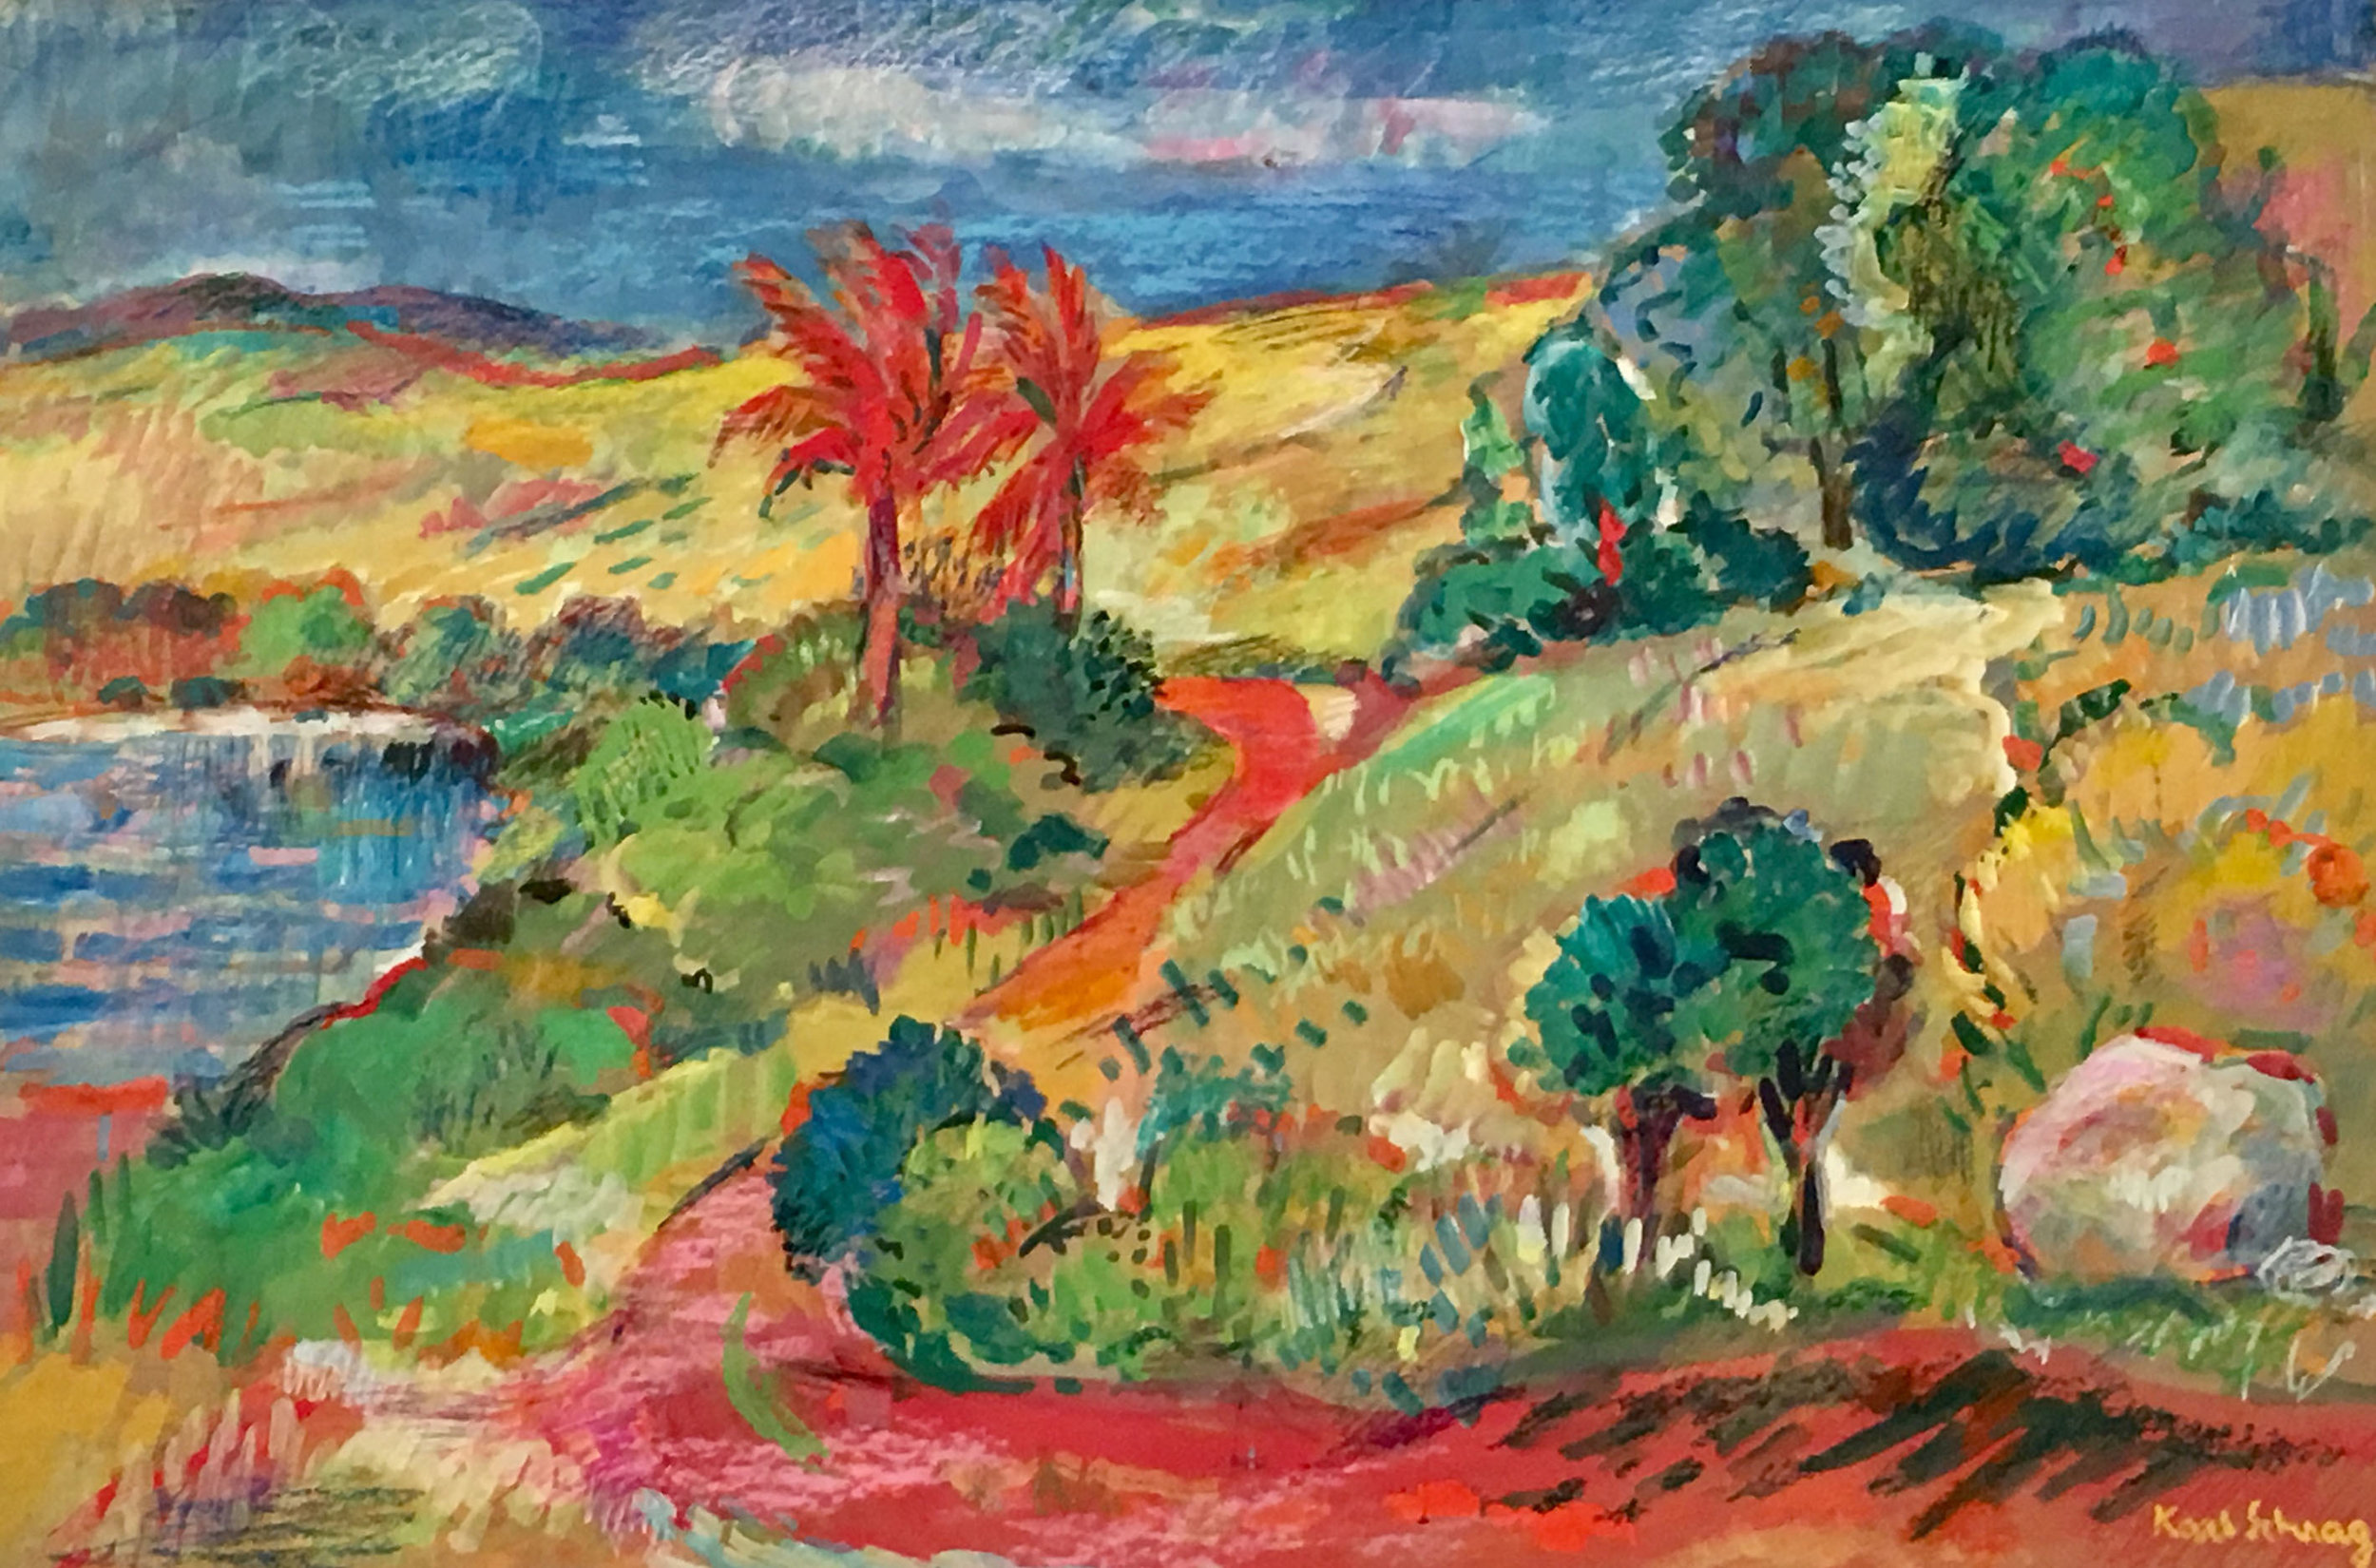 Gouache and crayon bright landscape of trees, hills, and water in green, red, yellow, blue, and pink